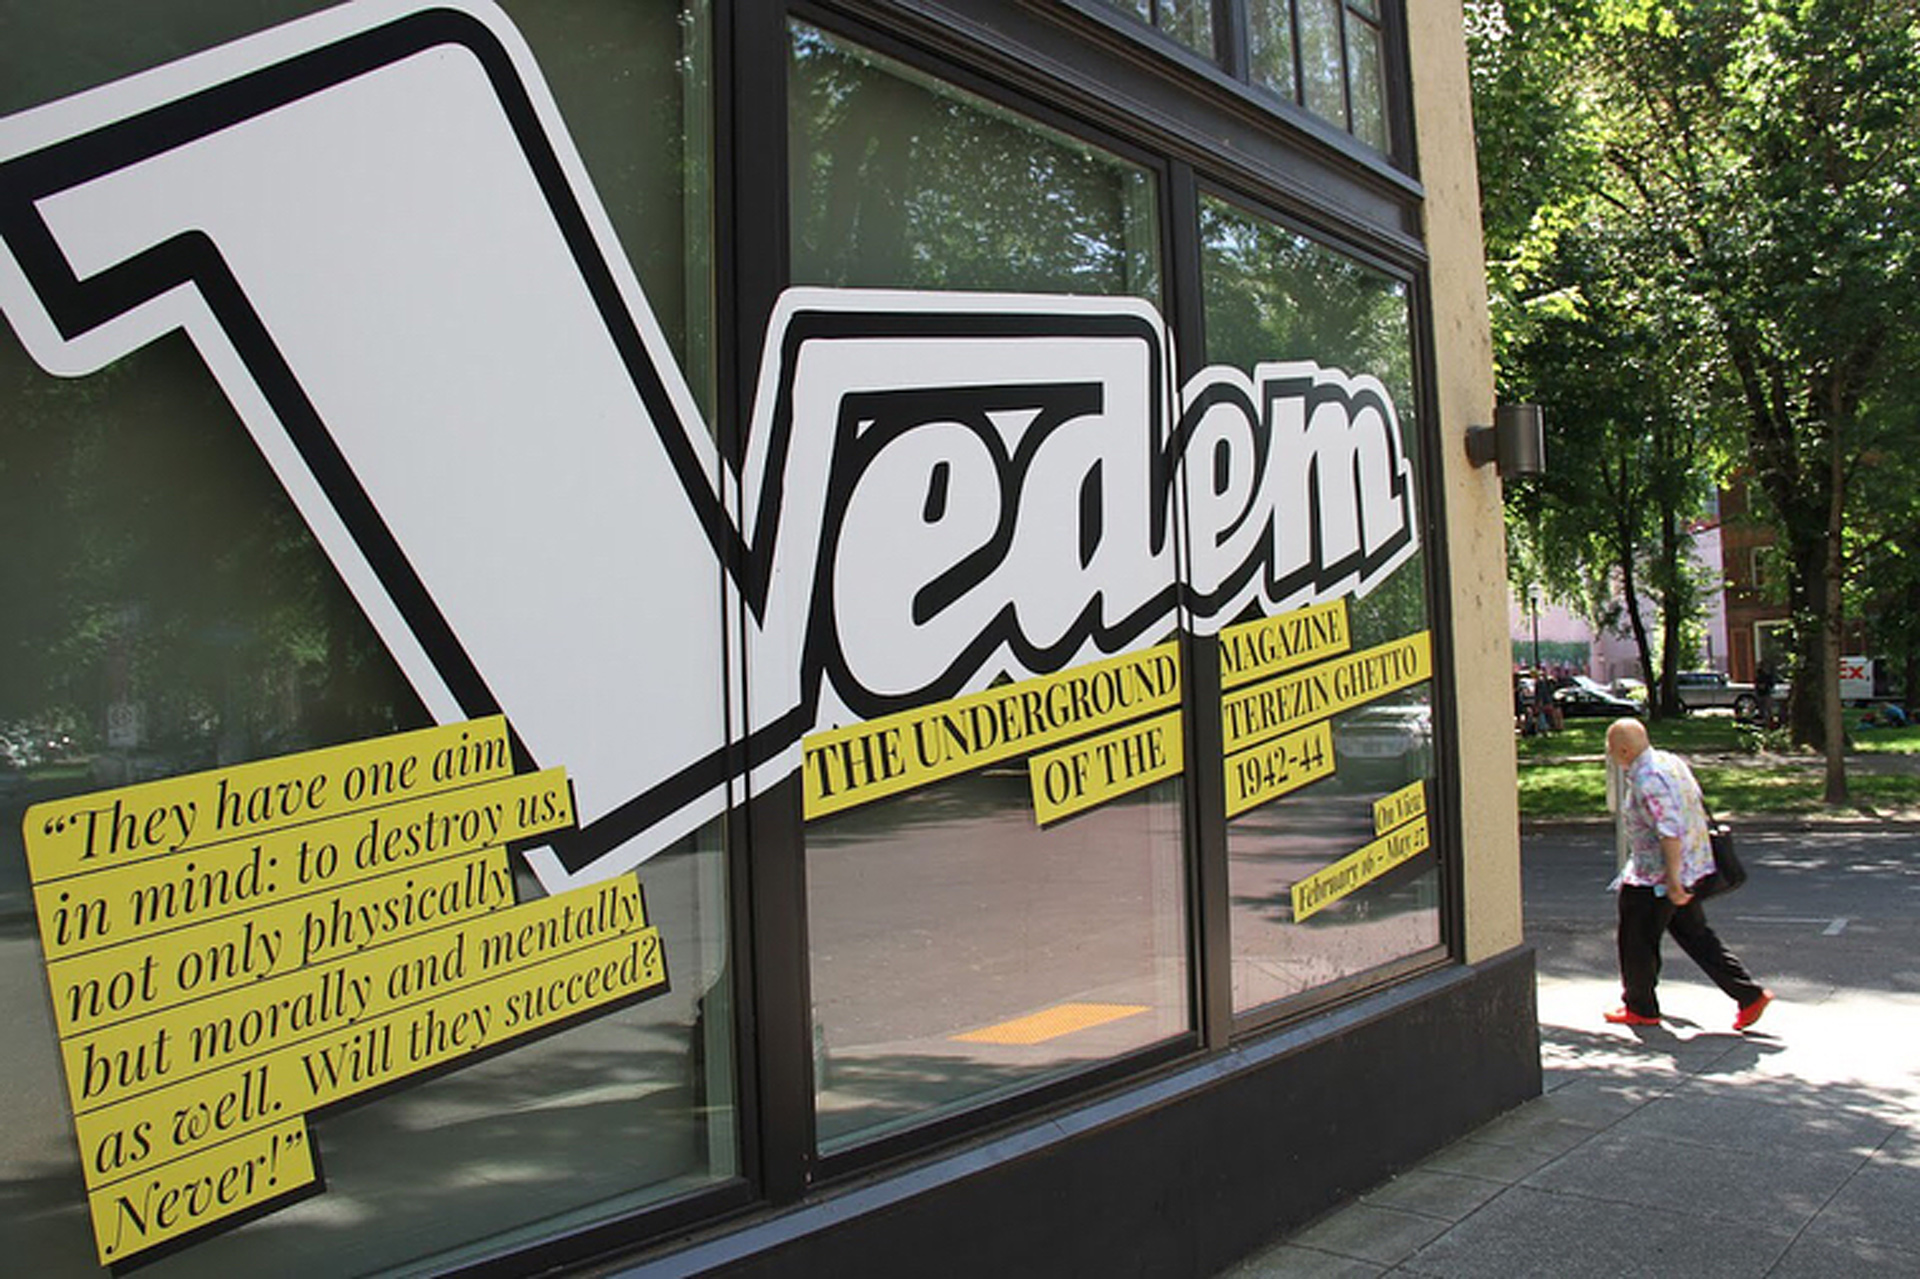 VEDEM underground - We are honored be to the creative director for project VEDEMunderground. It is a great partnership.